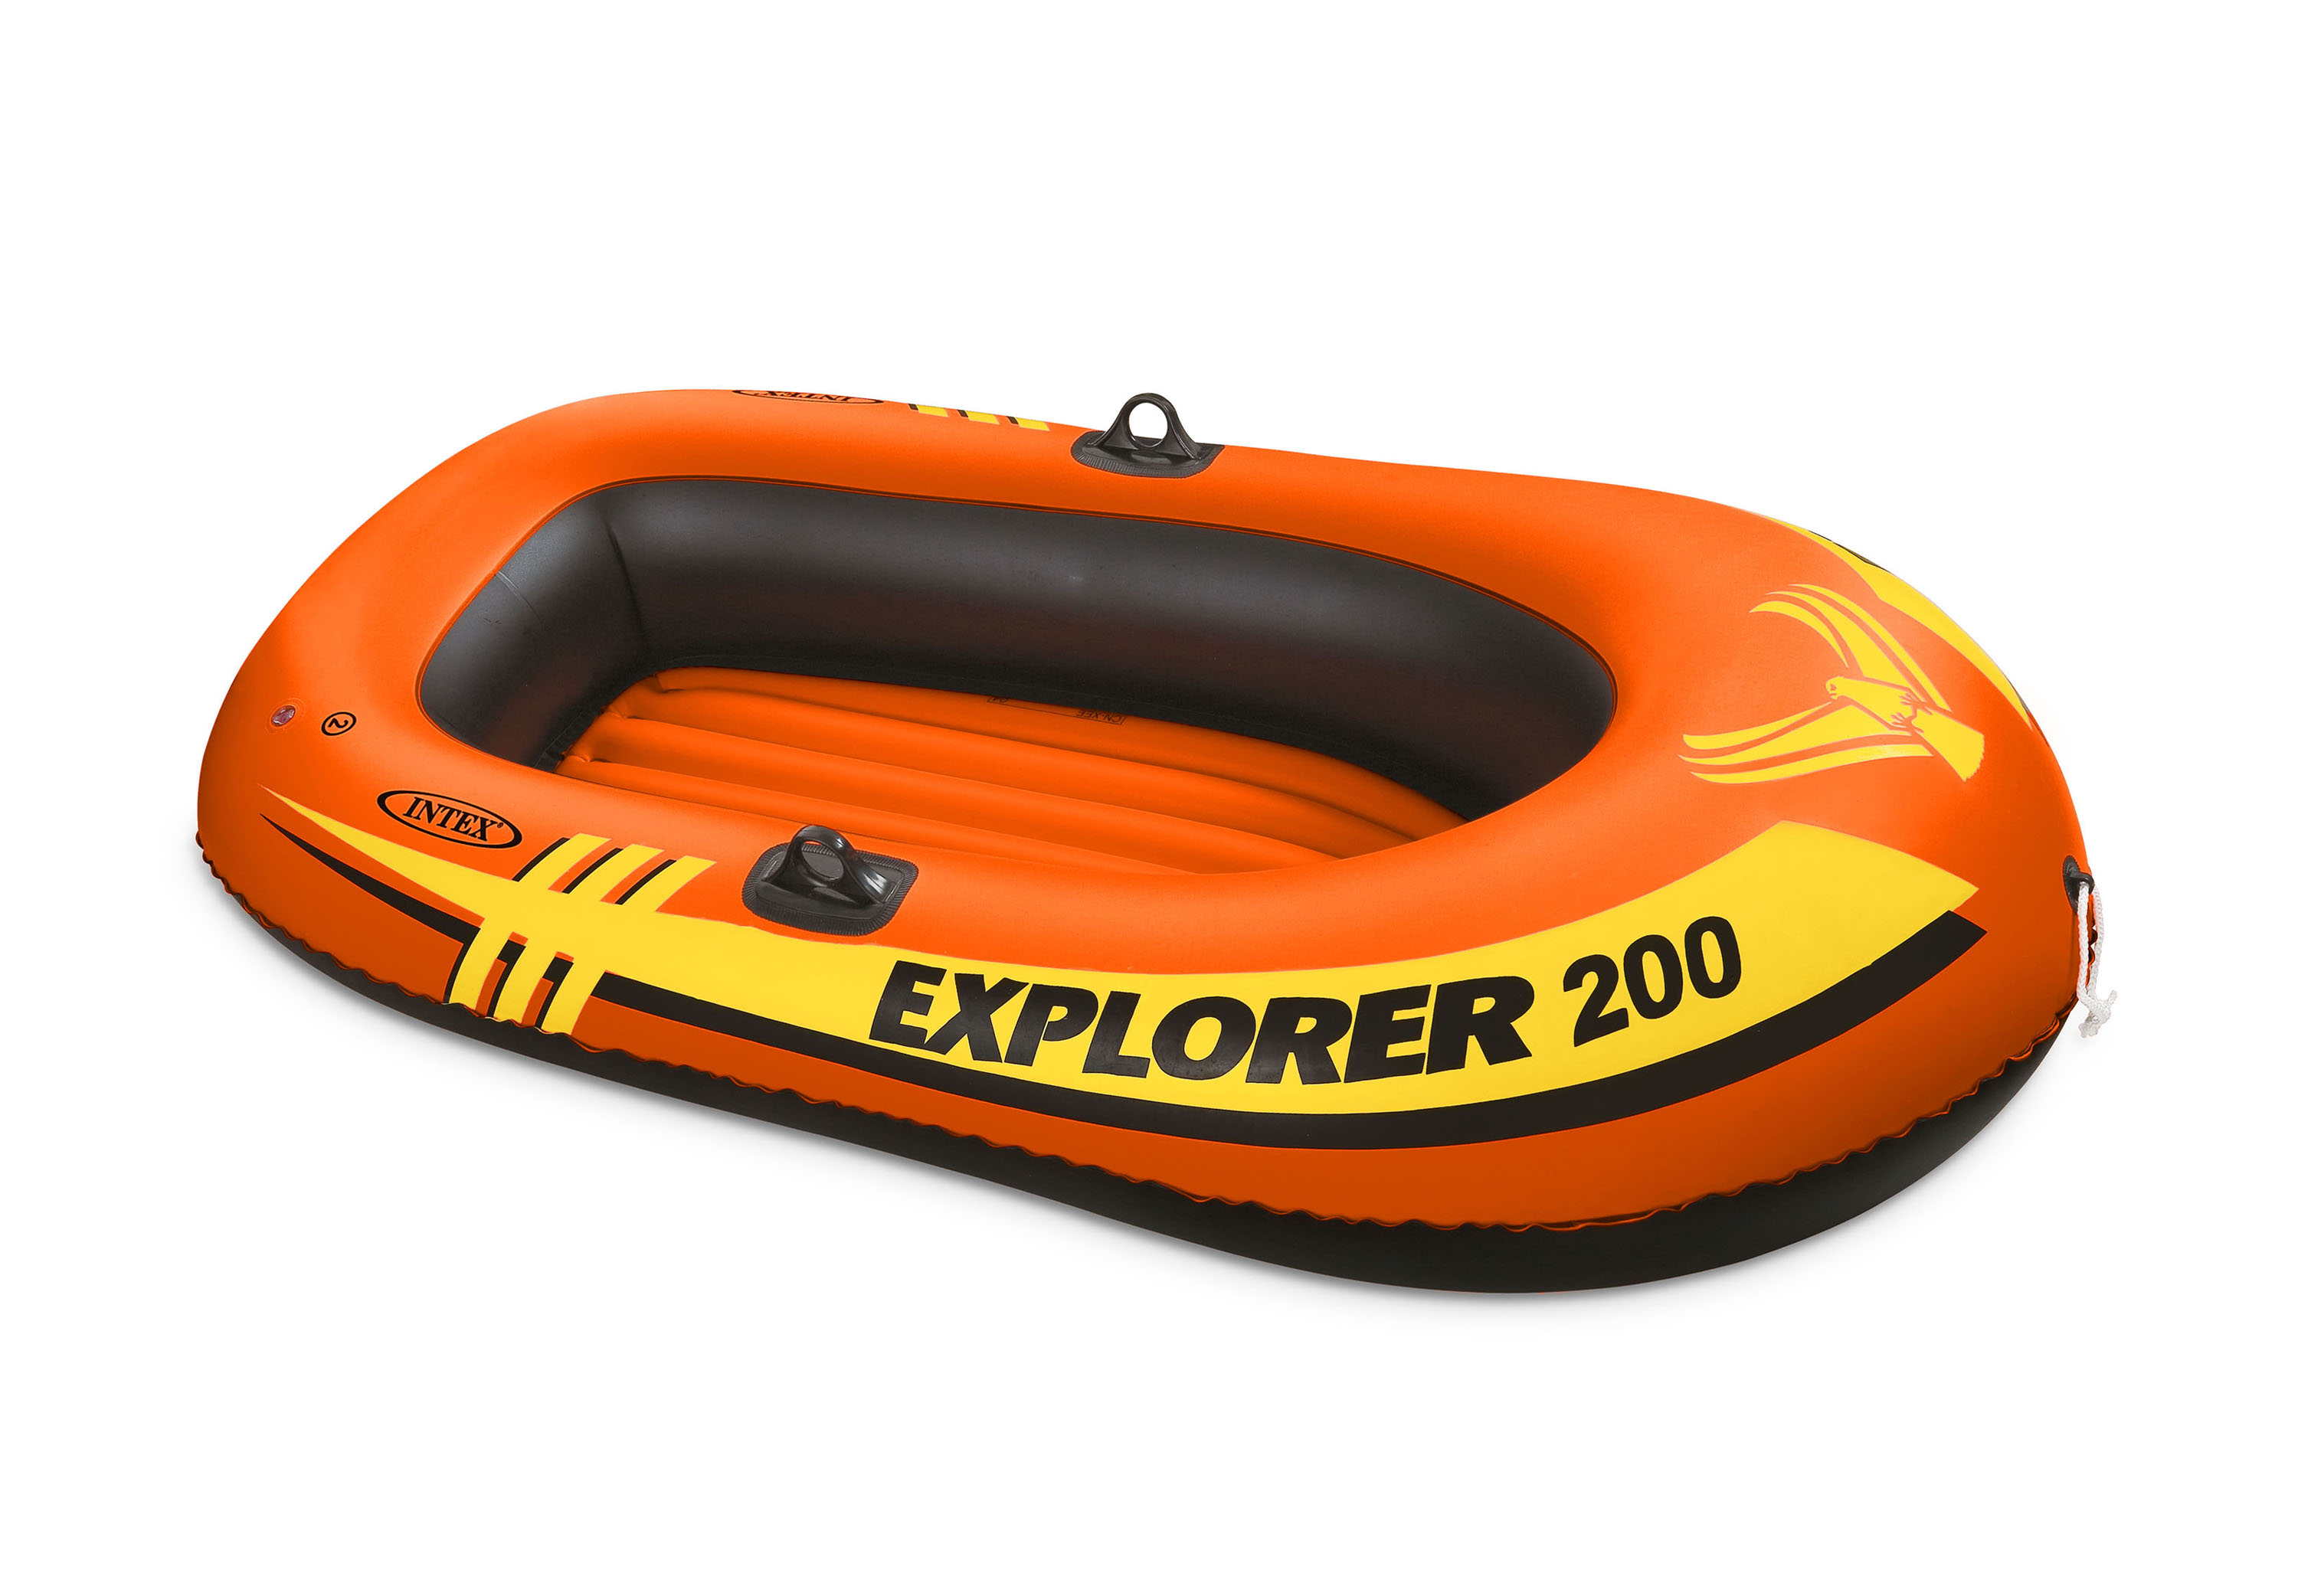 Intex Explorer 200 Inflatable 2 Person Capacity Pool & Lake Fishing Raft Boat by Intex